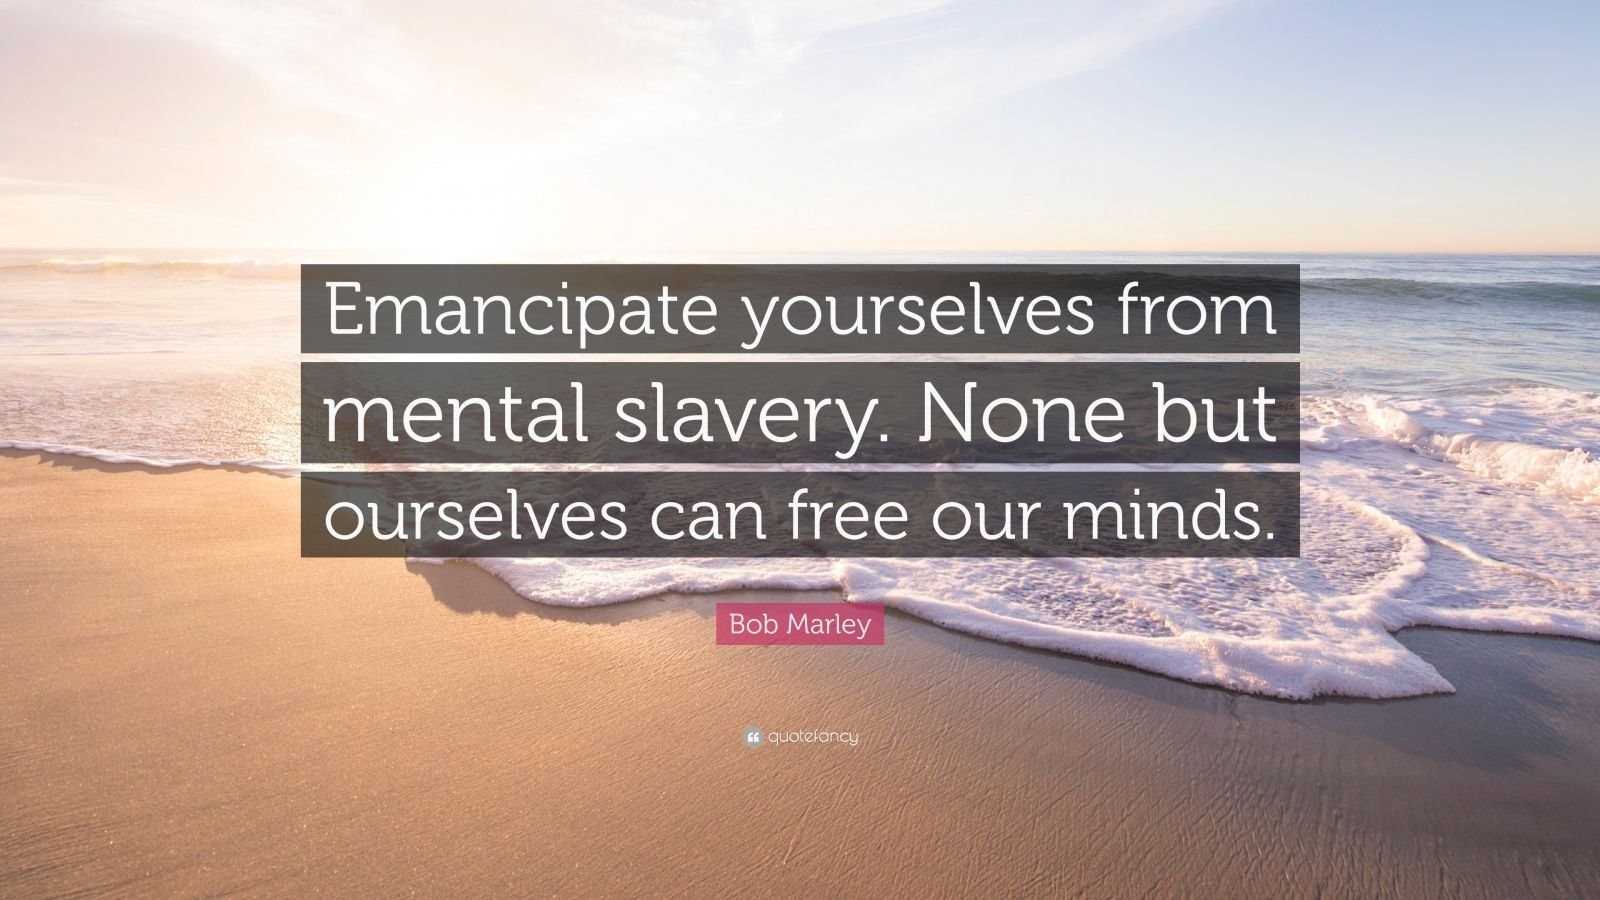 Bob Marley Quote Emancipate Yourselves From Mental